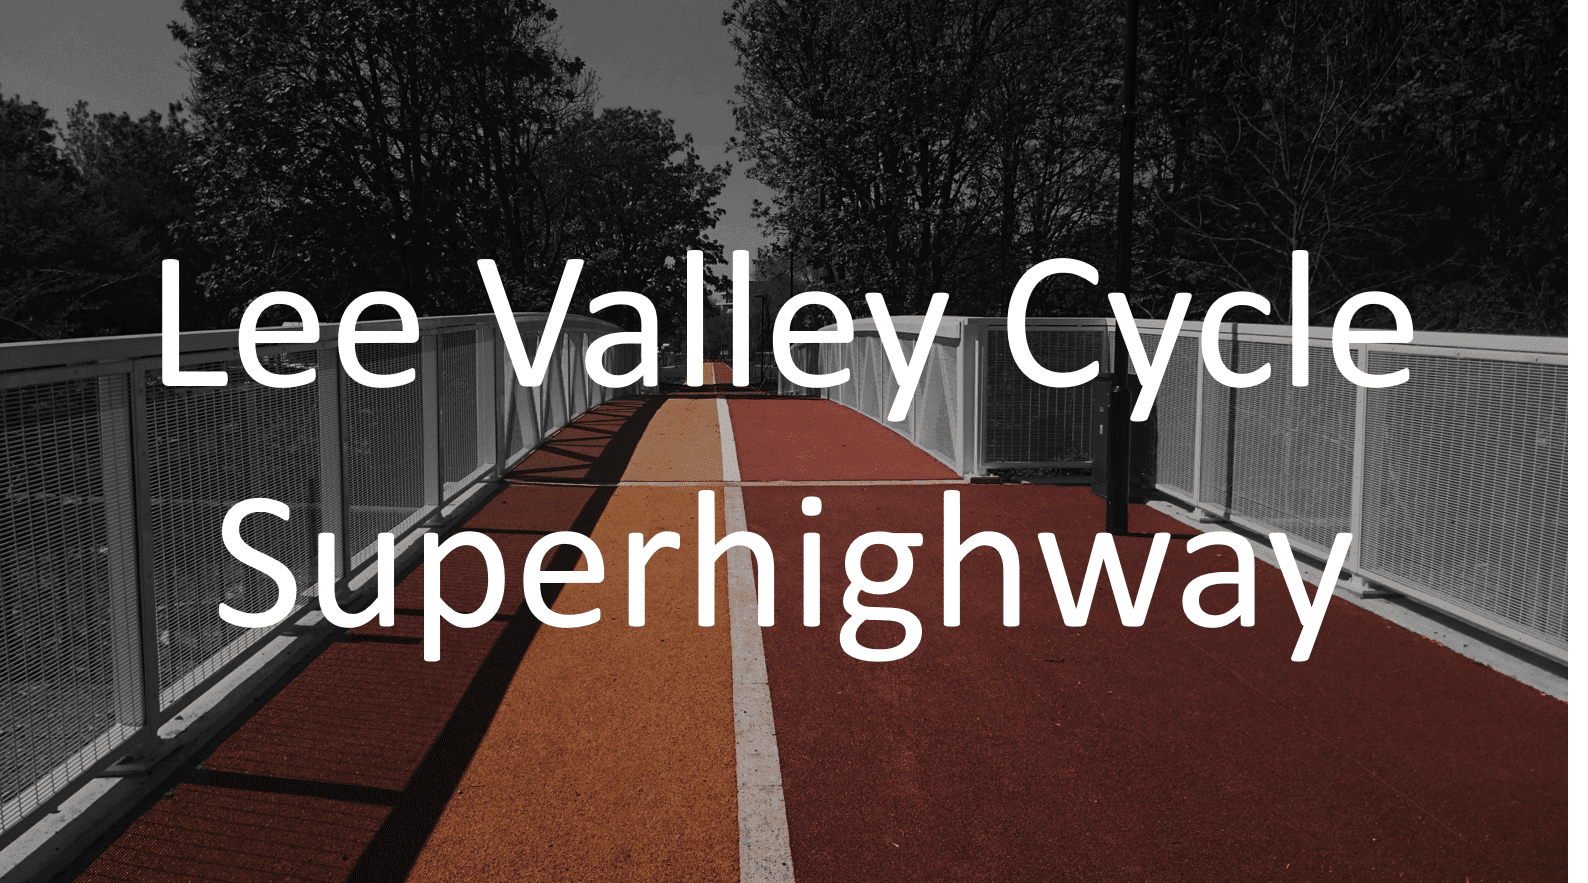 Lee Valley Cycle Superhighway